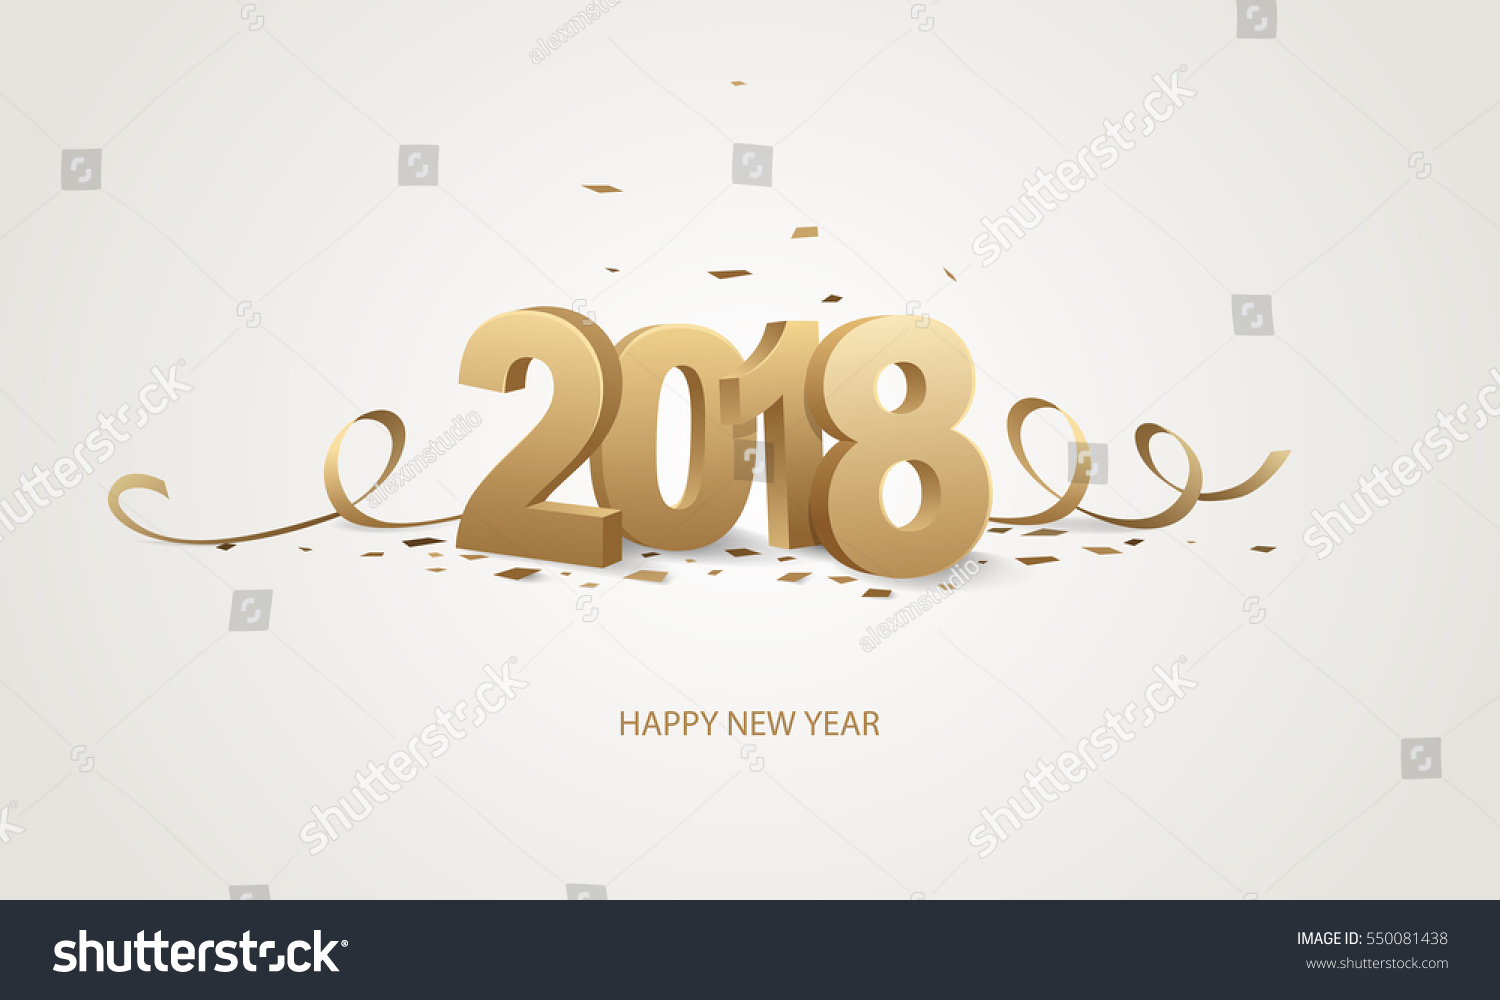 happy new year 2018 golden 3d numbers with ribbons and confetti on a white background